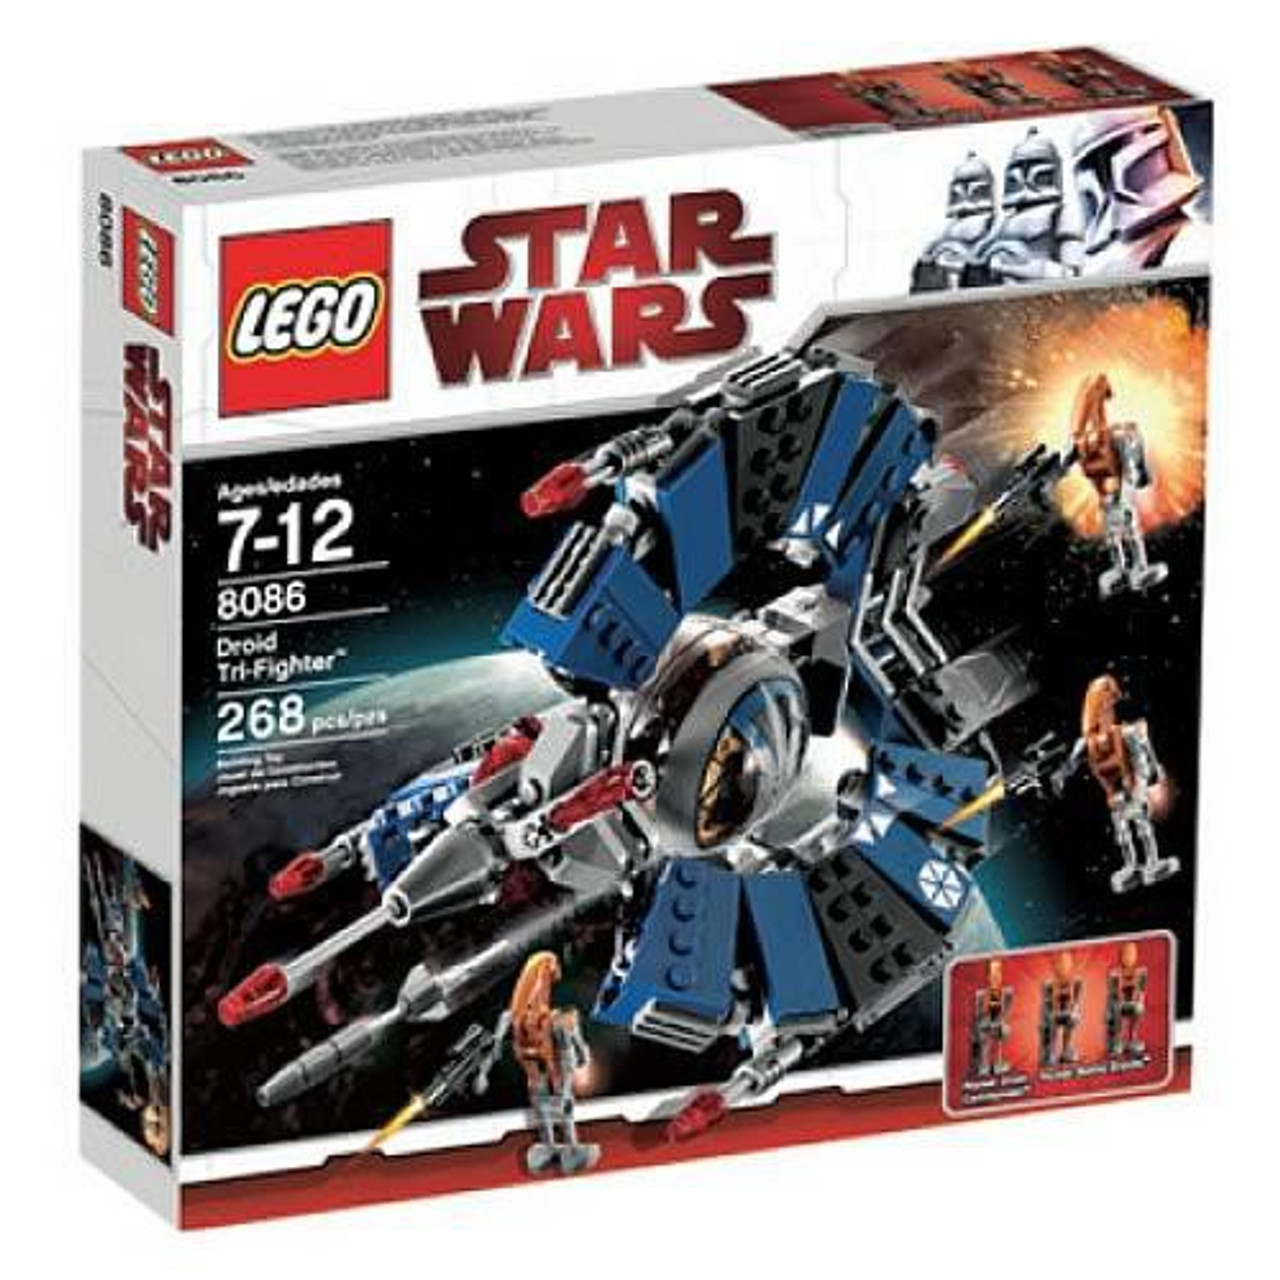 Lego Star Wars The Clone Wars Droid Tri Fighter Set 8086 Damaged Package Toywiz